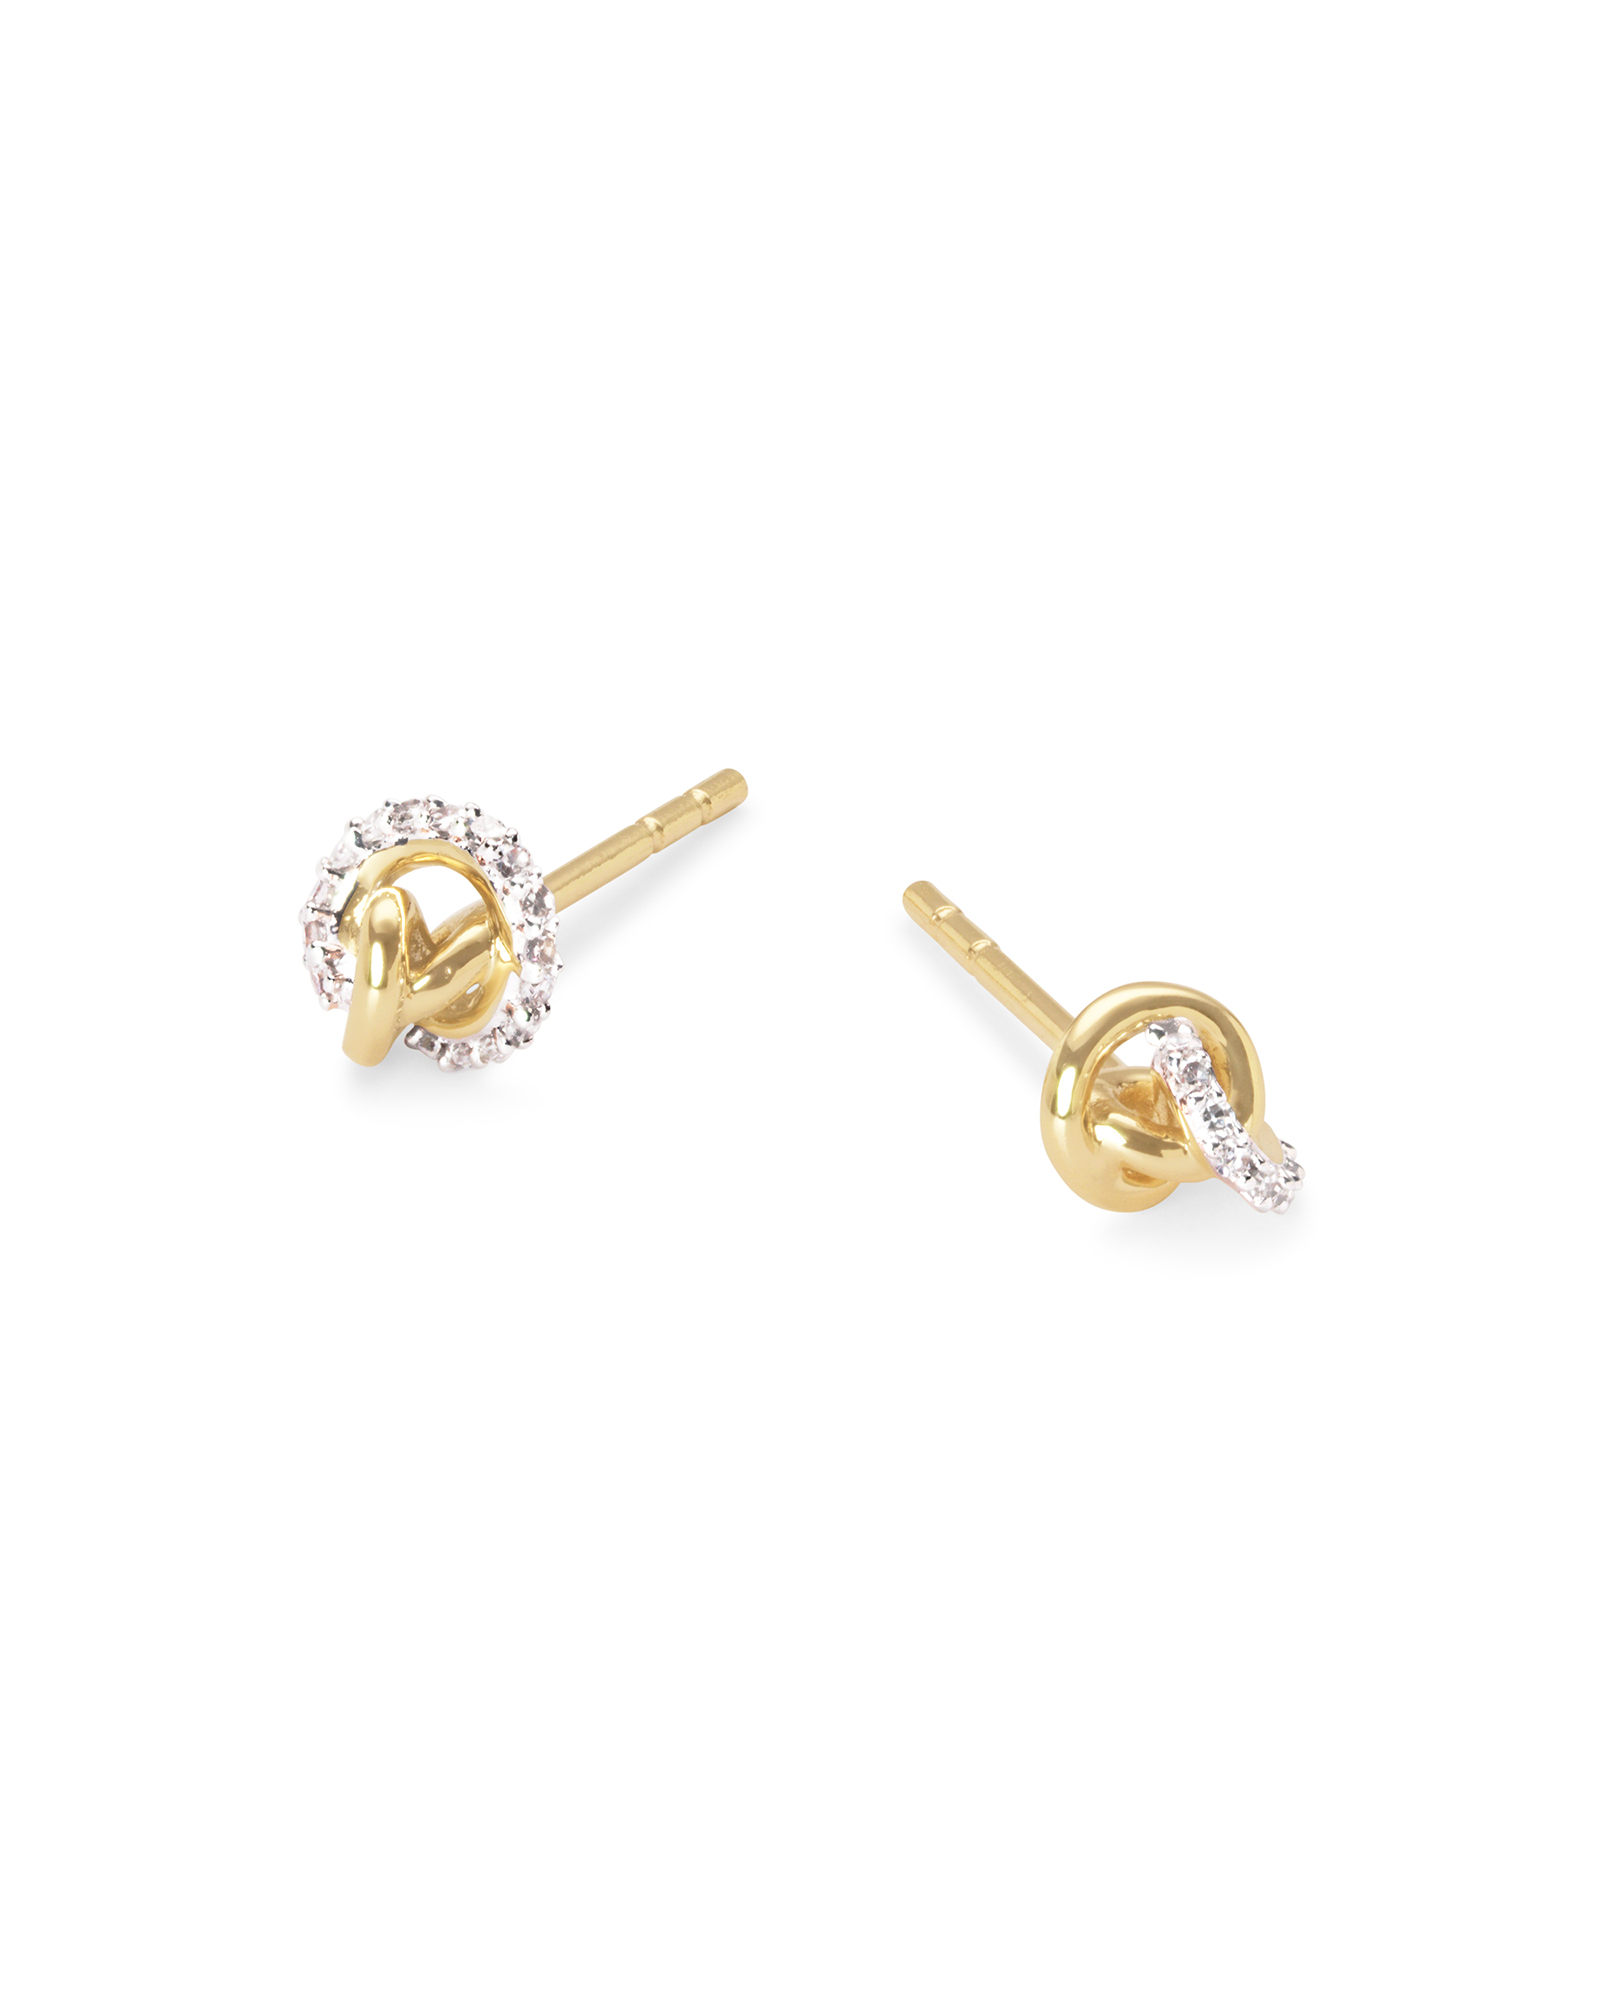 Love Knot 14K Yellow Gold Stud Earring in White Diamond